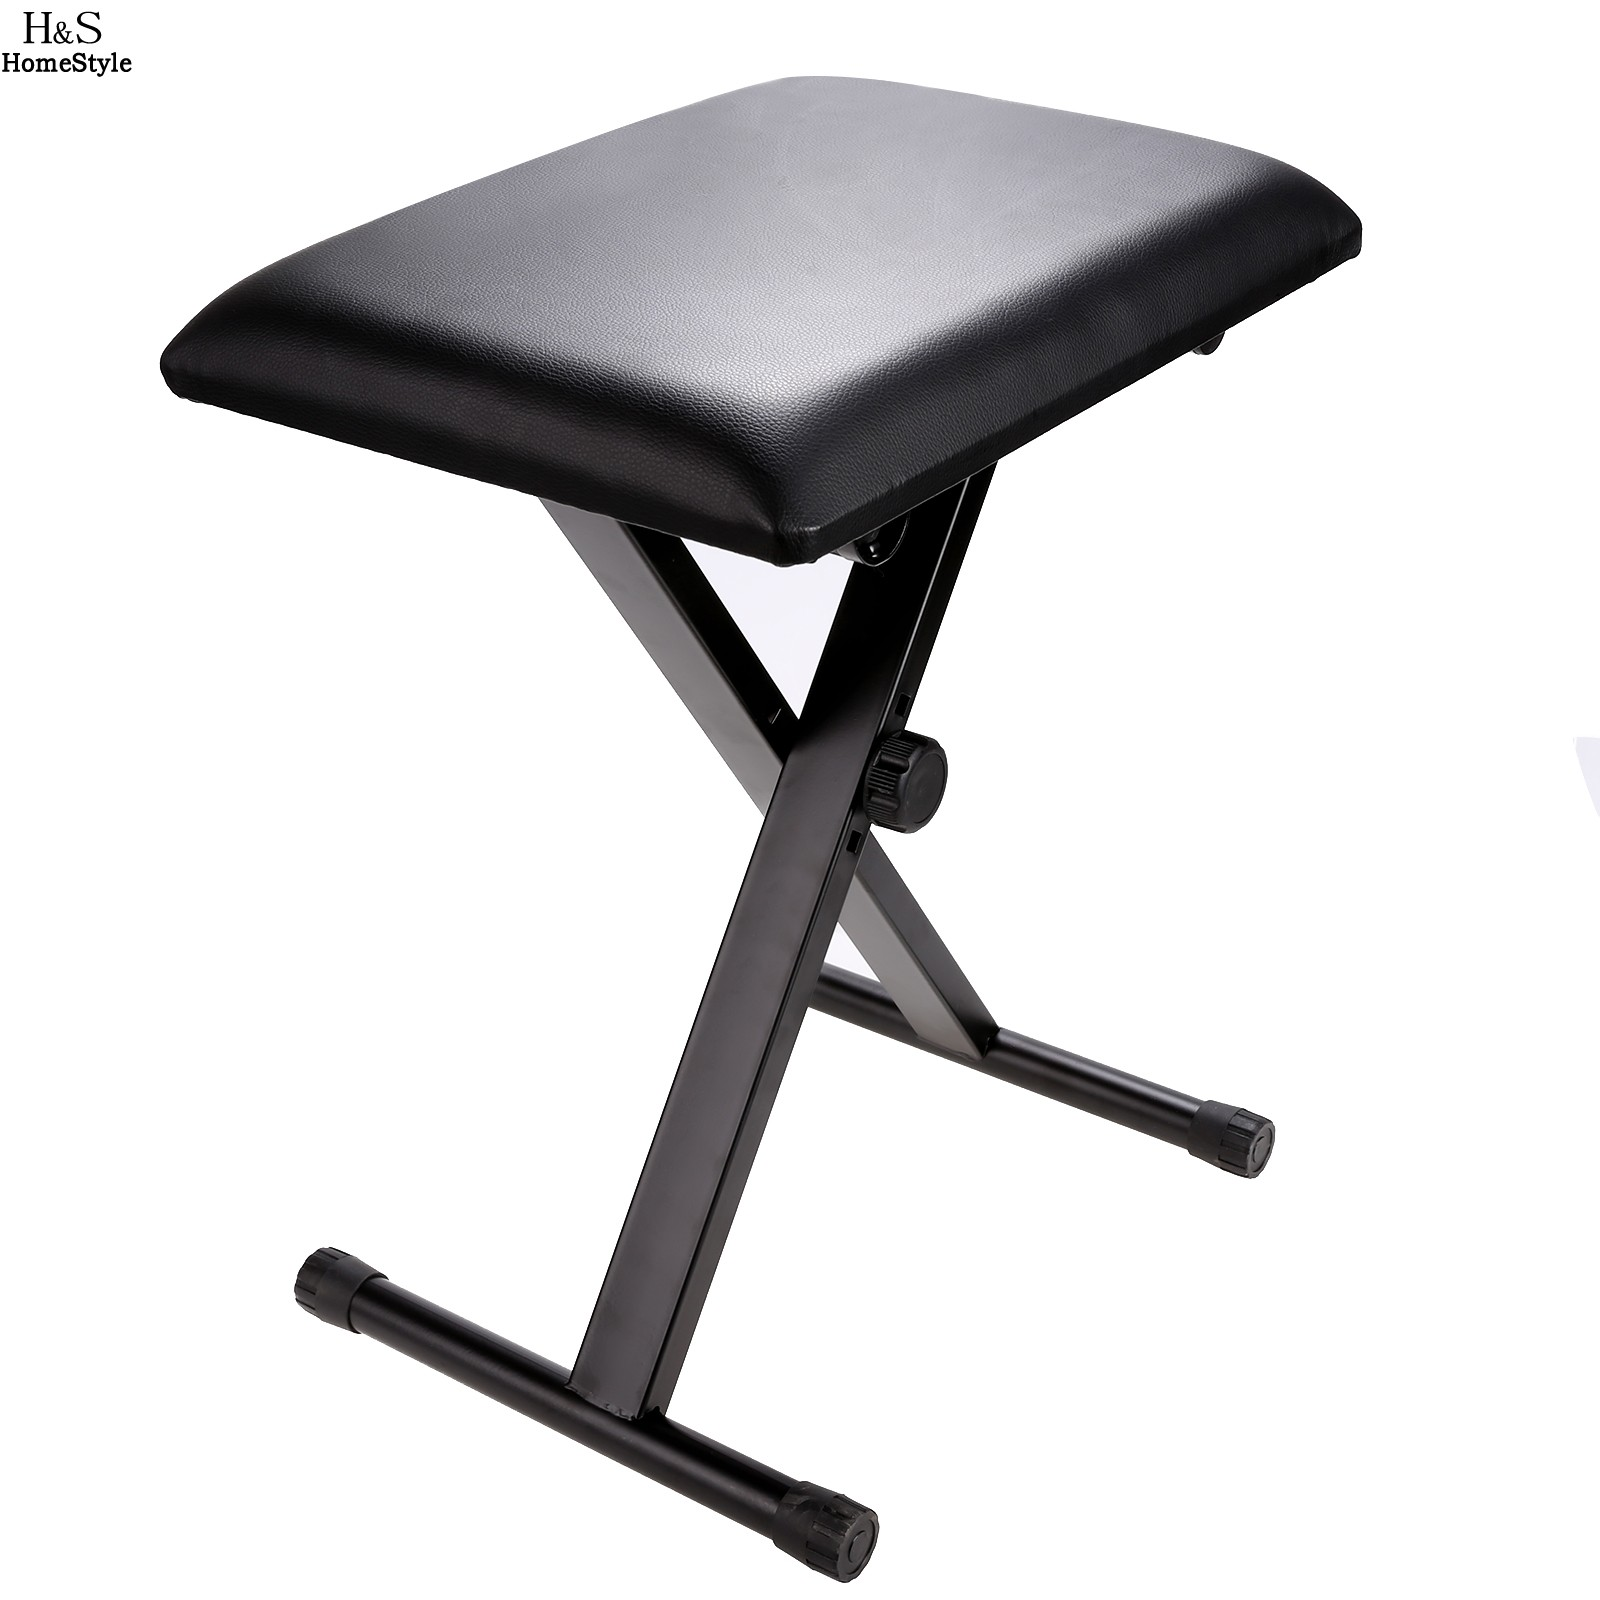 Homdox Folding Chair Adjustable Piano Keyboard Bench Leather Padded Seat Rubber Feet Folding  Stool Chair N30* health care adjustable medical shower chair bathtub bench bath seat stool armrest back